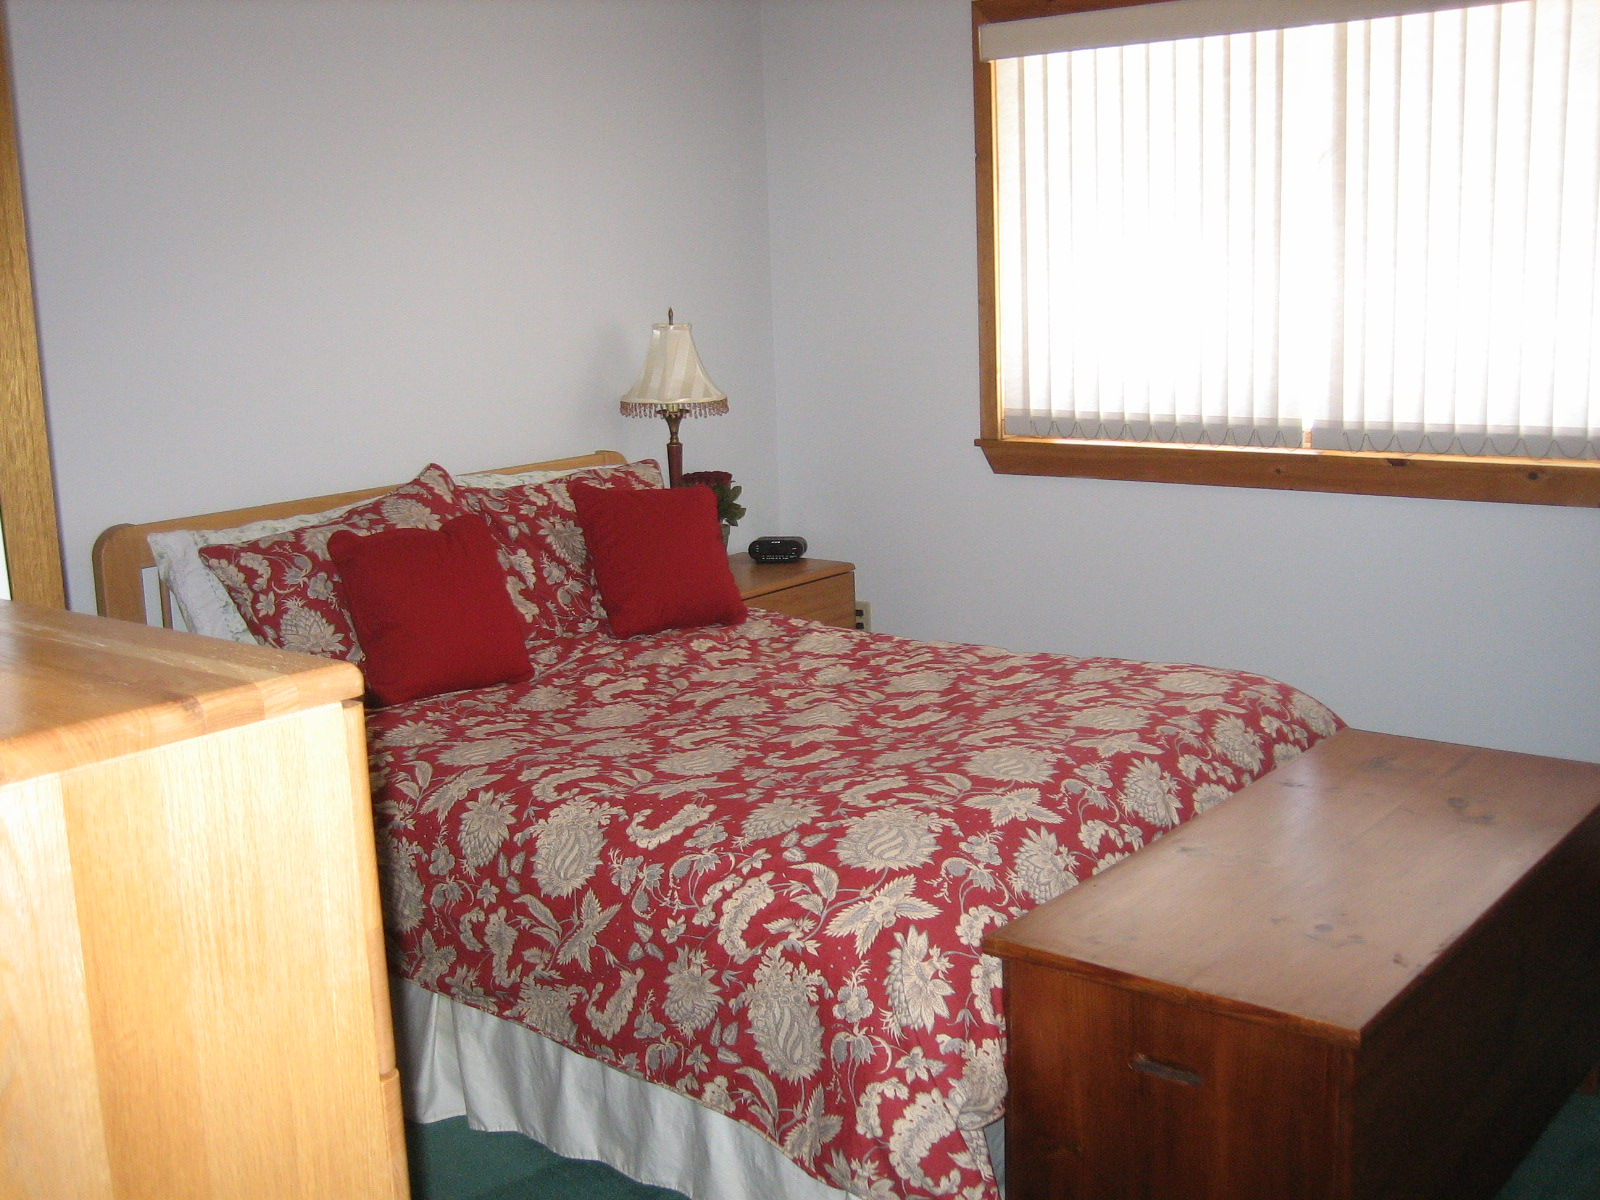 LOWER LEVEL DOUBLE BED